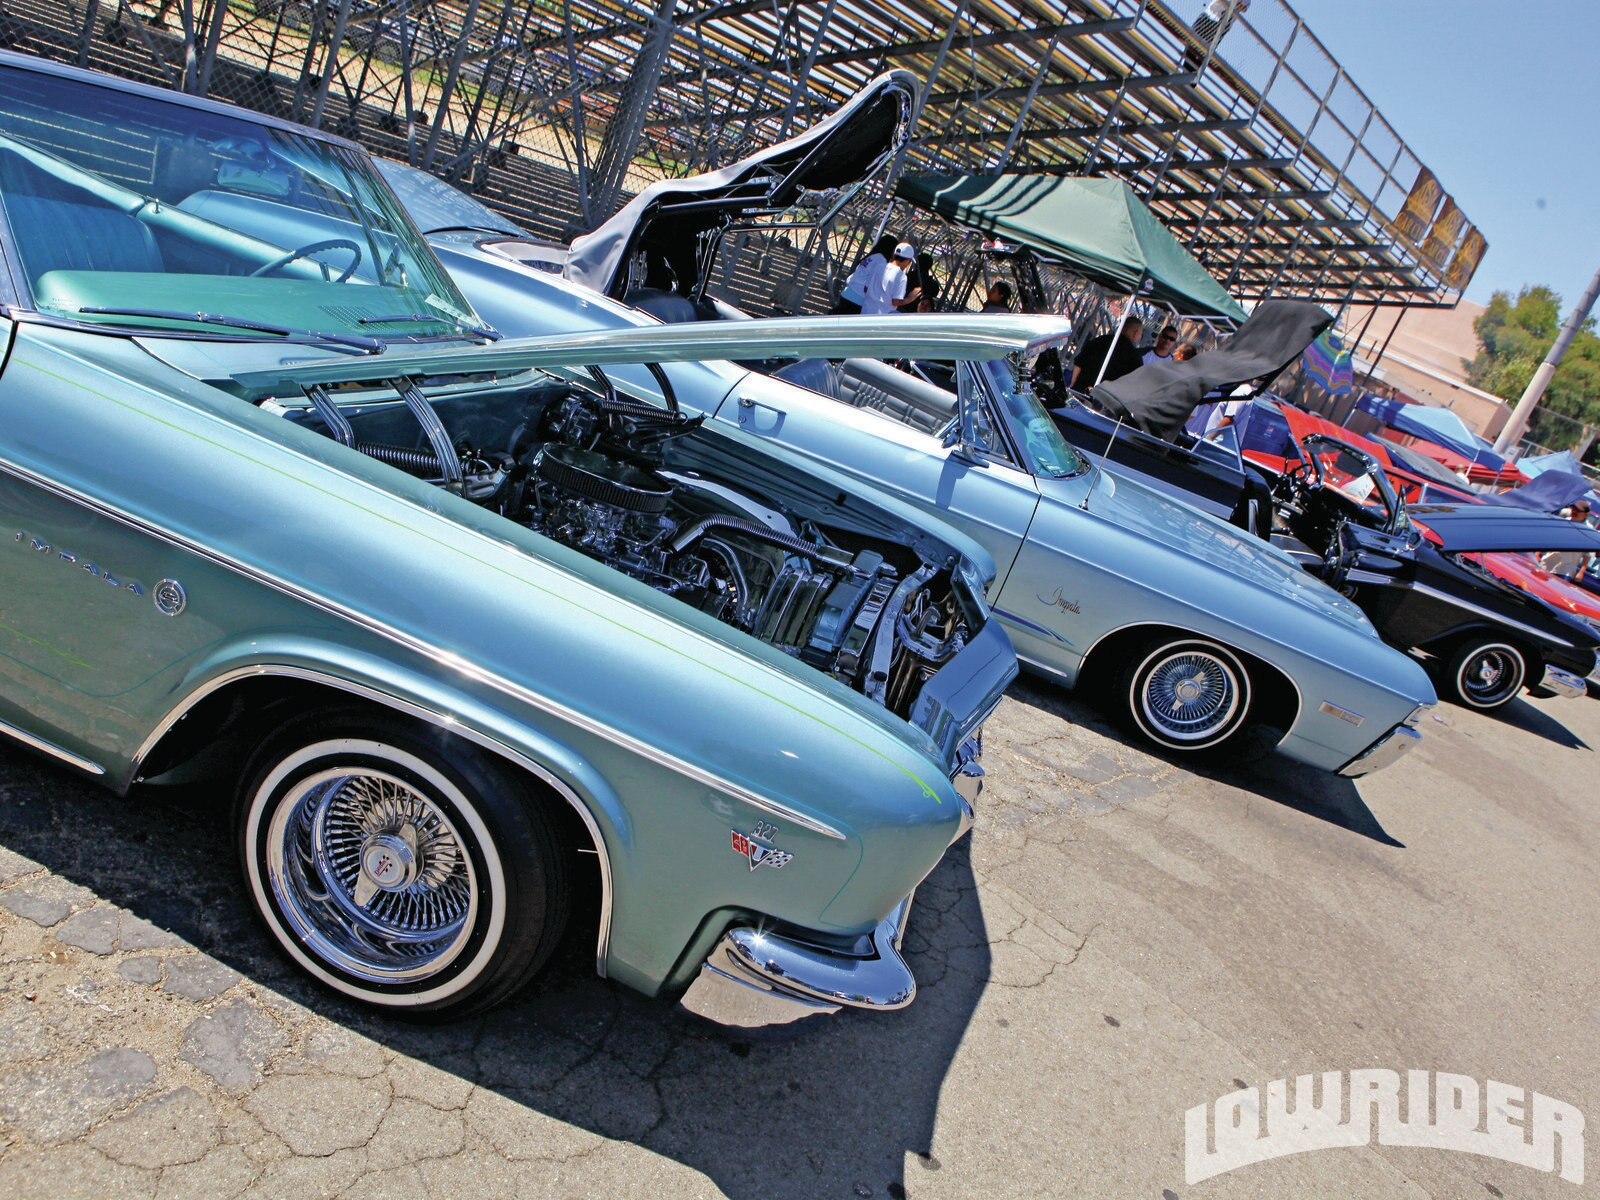 1205-lrmp-01-o-oldies-car-show-concert-chevrolet-impalas1